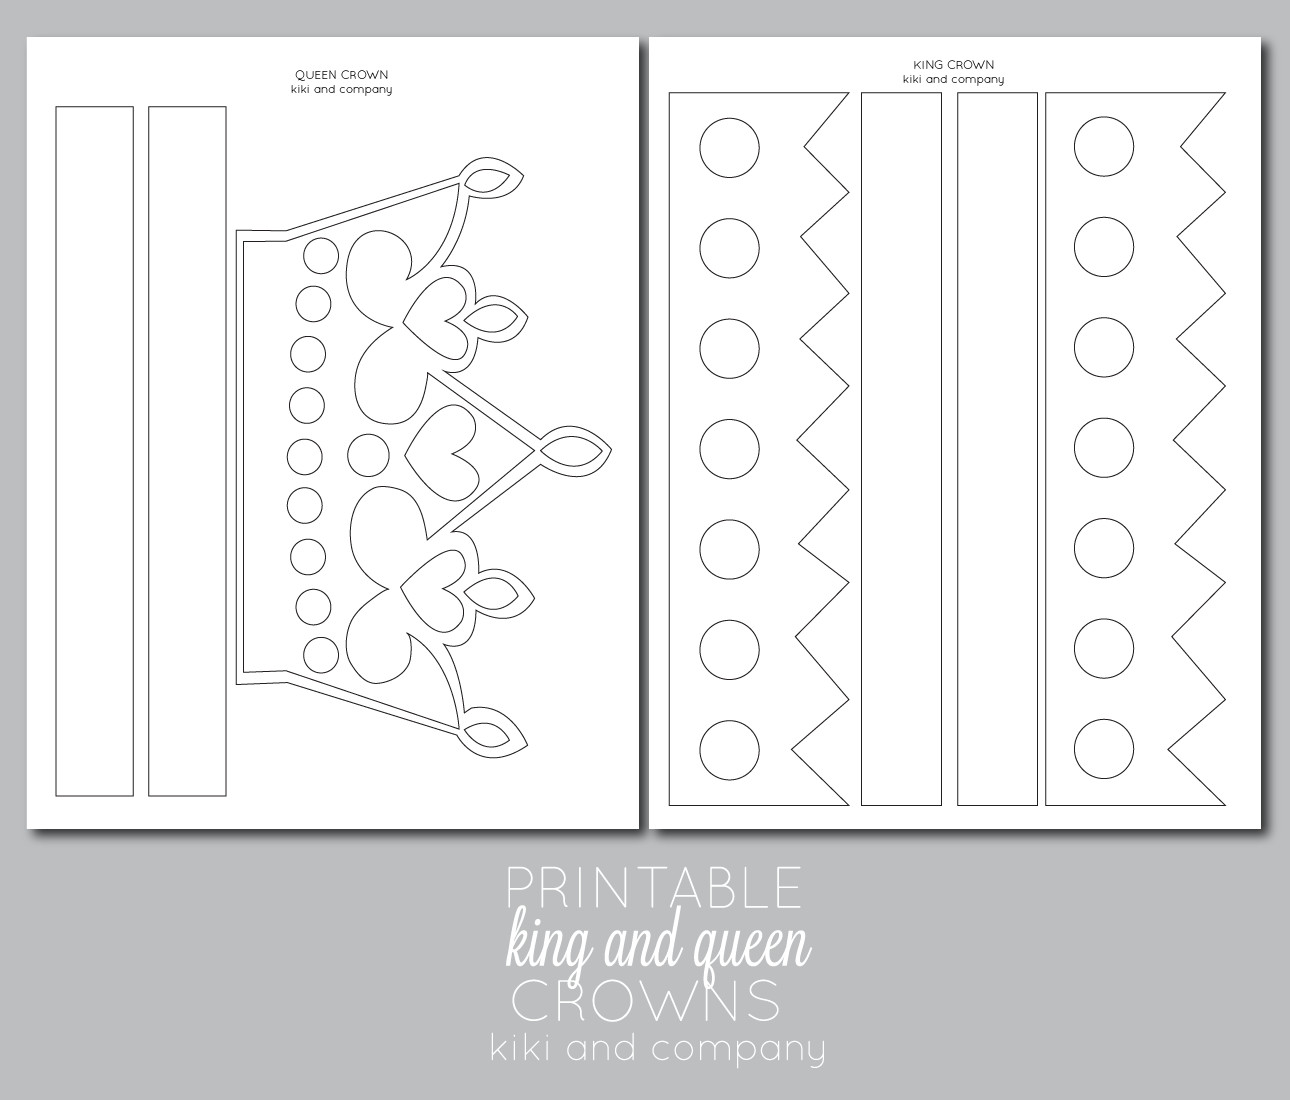 Crown Template for King Printable Kings and Queens Crown Free Printable the